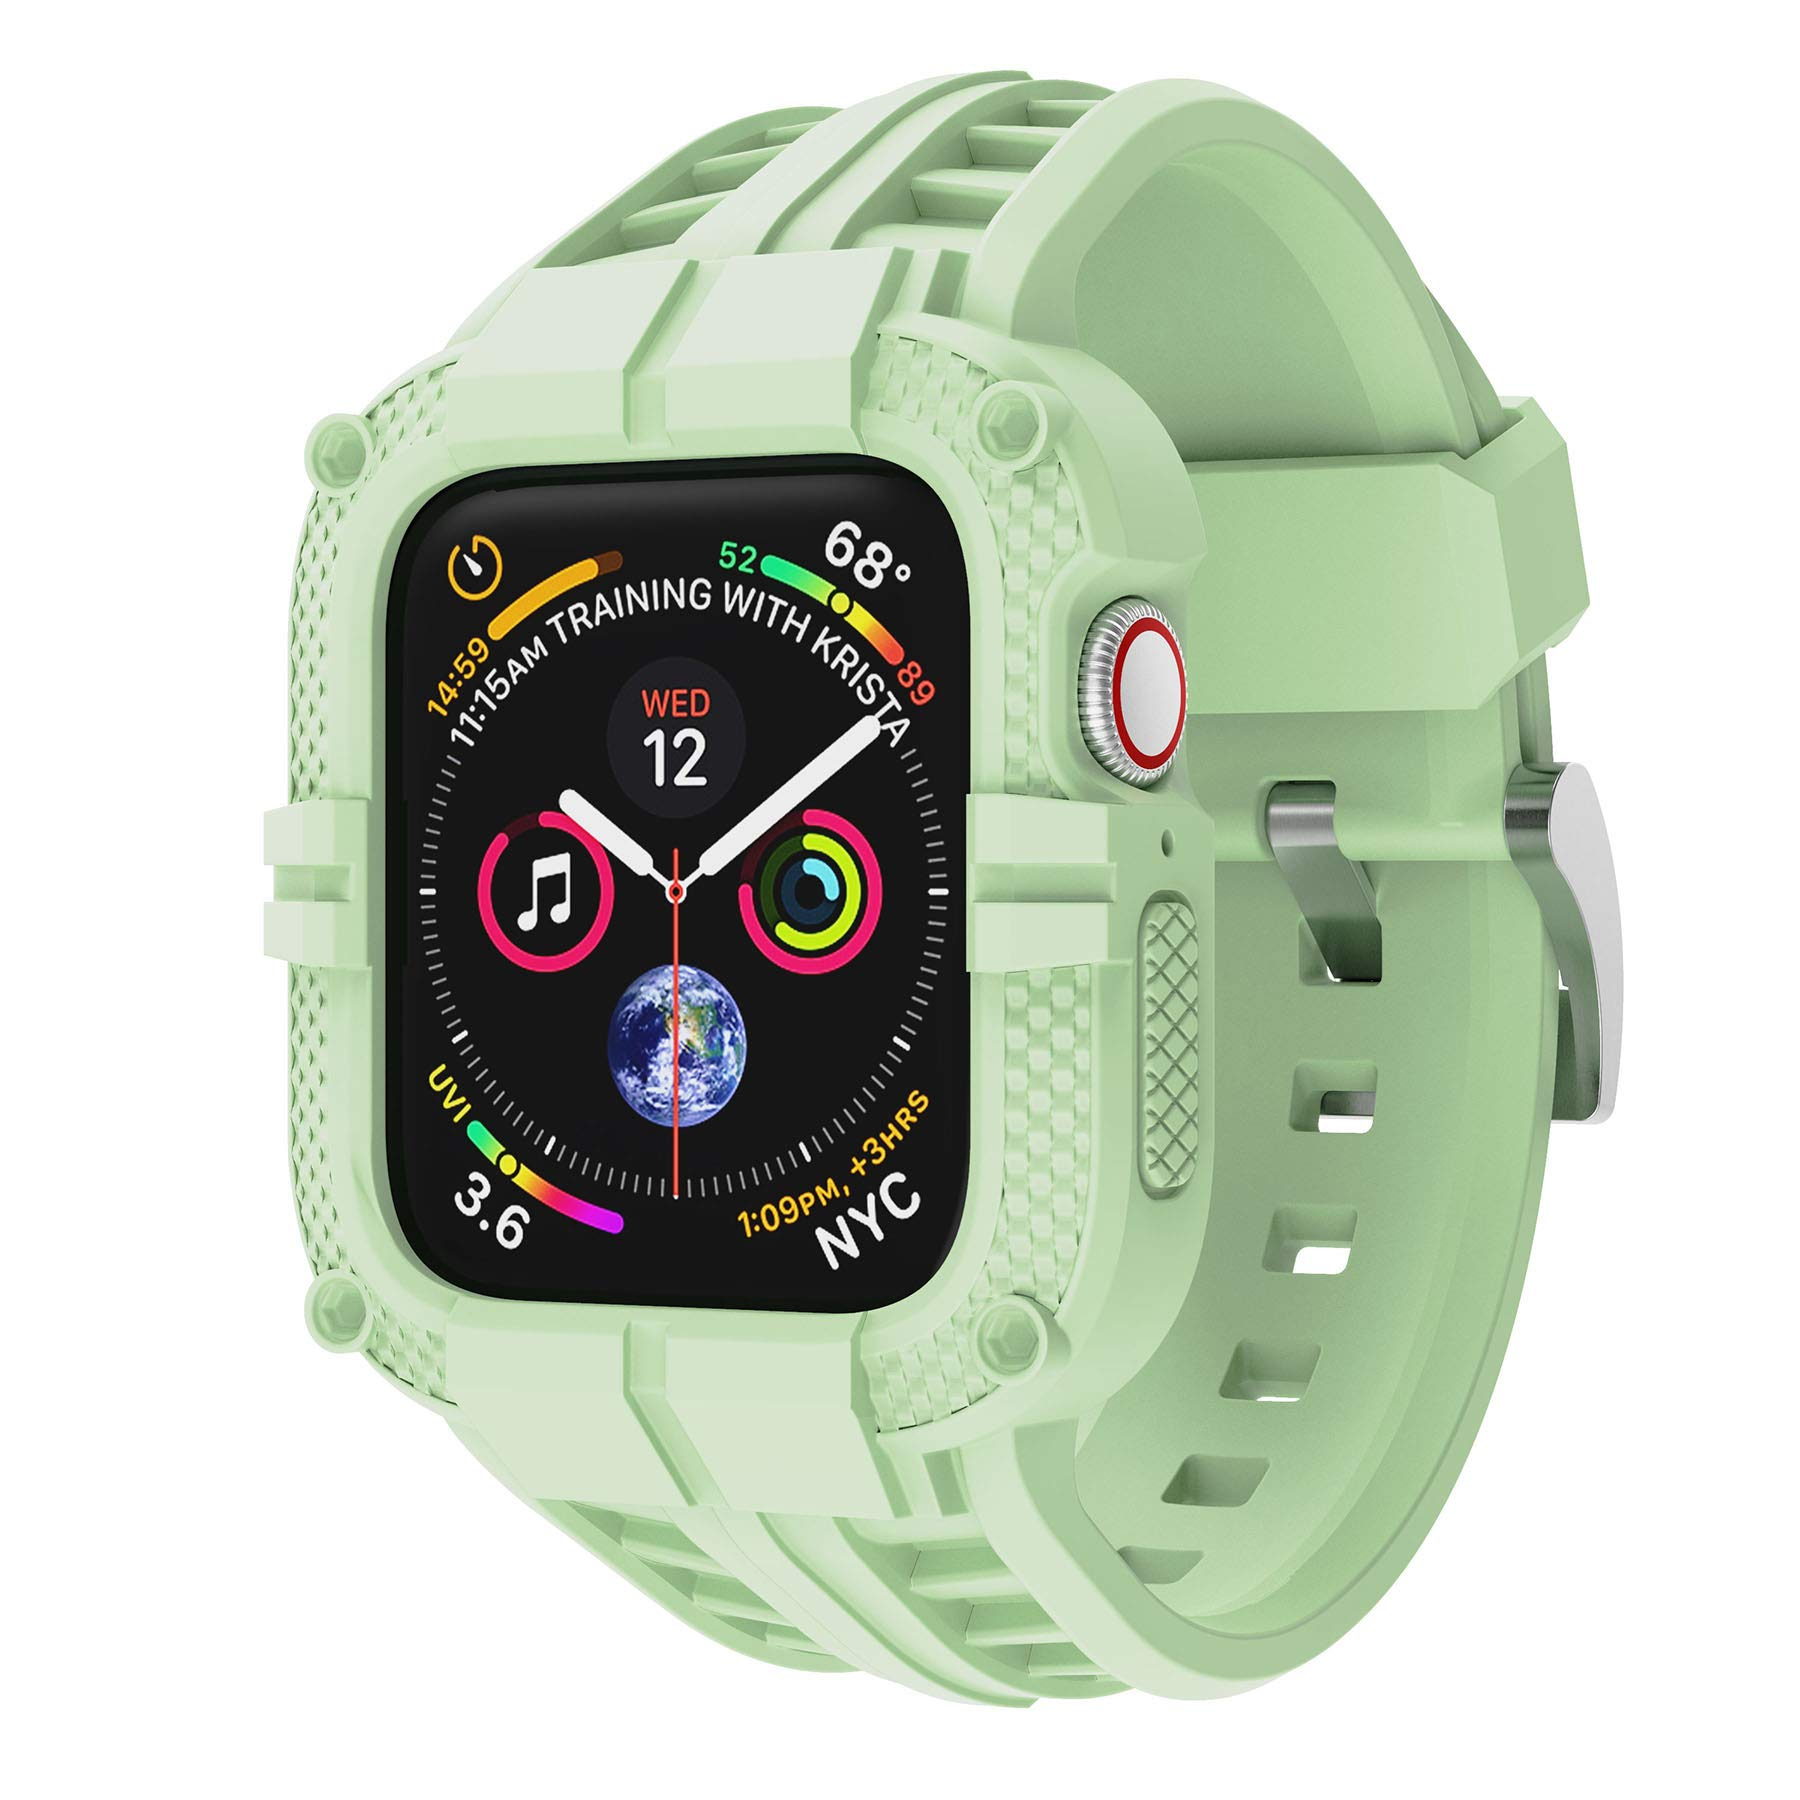 T-ENGINE Band Compatible with Apple Watch Band 40mm Series 6 Series 5/4/SE, TPU Rugged Band with Full Protection Case for Women/Men, Mint Green